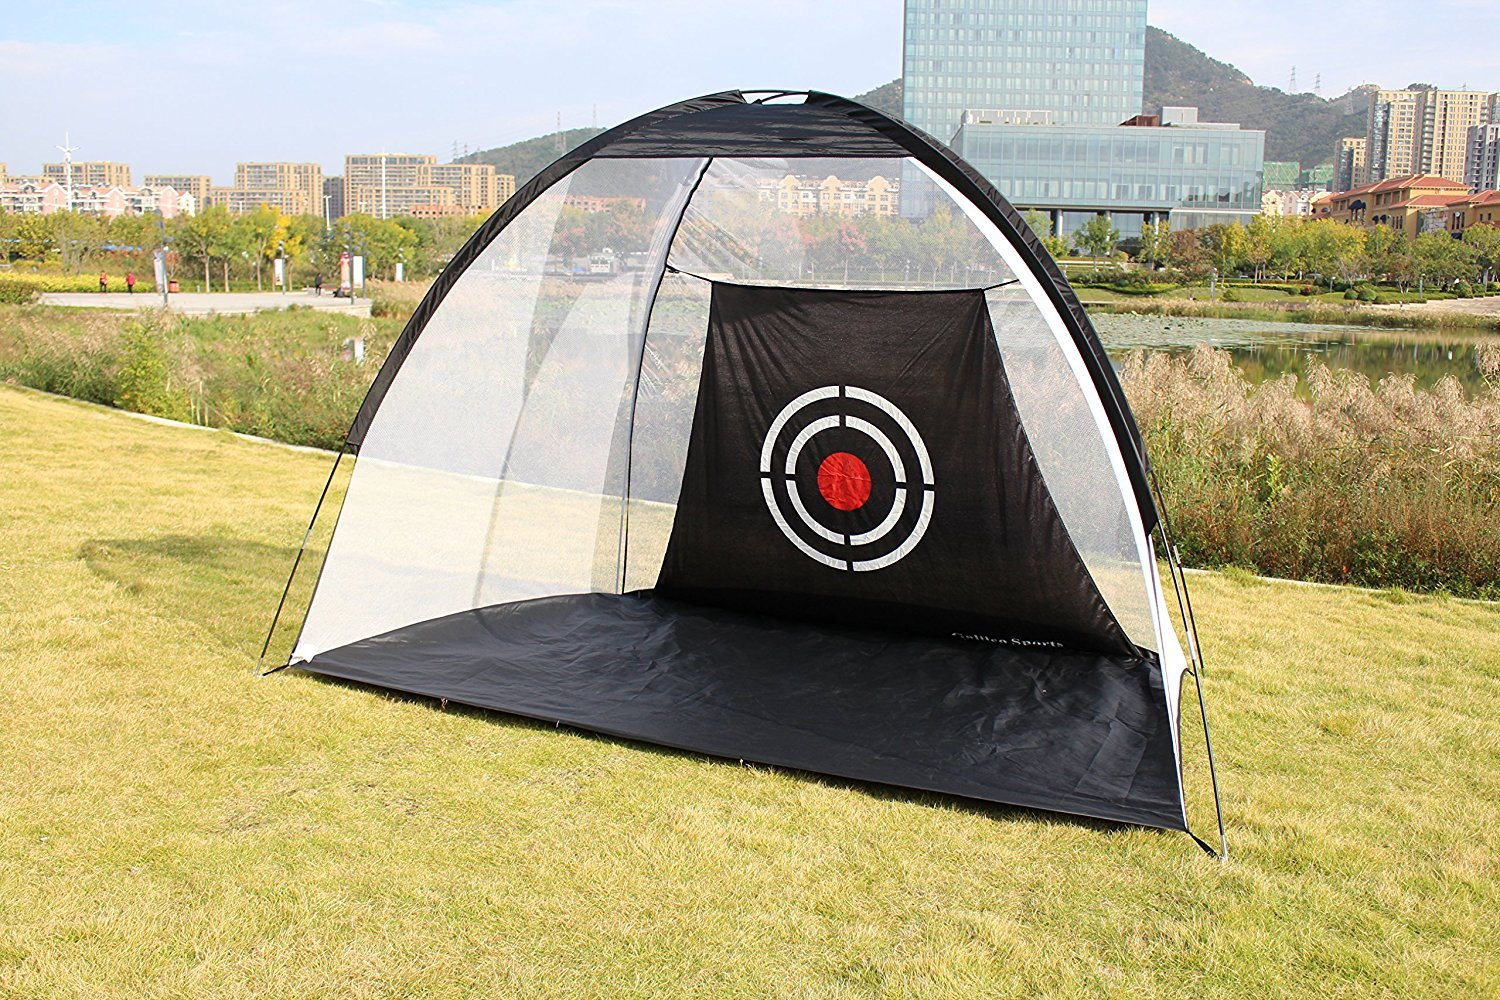 Galileo Golf Net Training Aids Hitting Practice Training Nets for Backyard Driving Range Indoor Use Golf Cage Tent Swing Training Aid with Target 10'x6.5'x6' by GALILEO